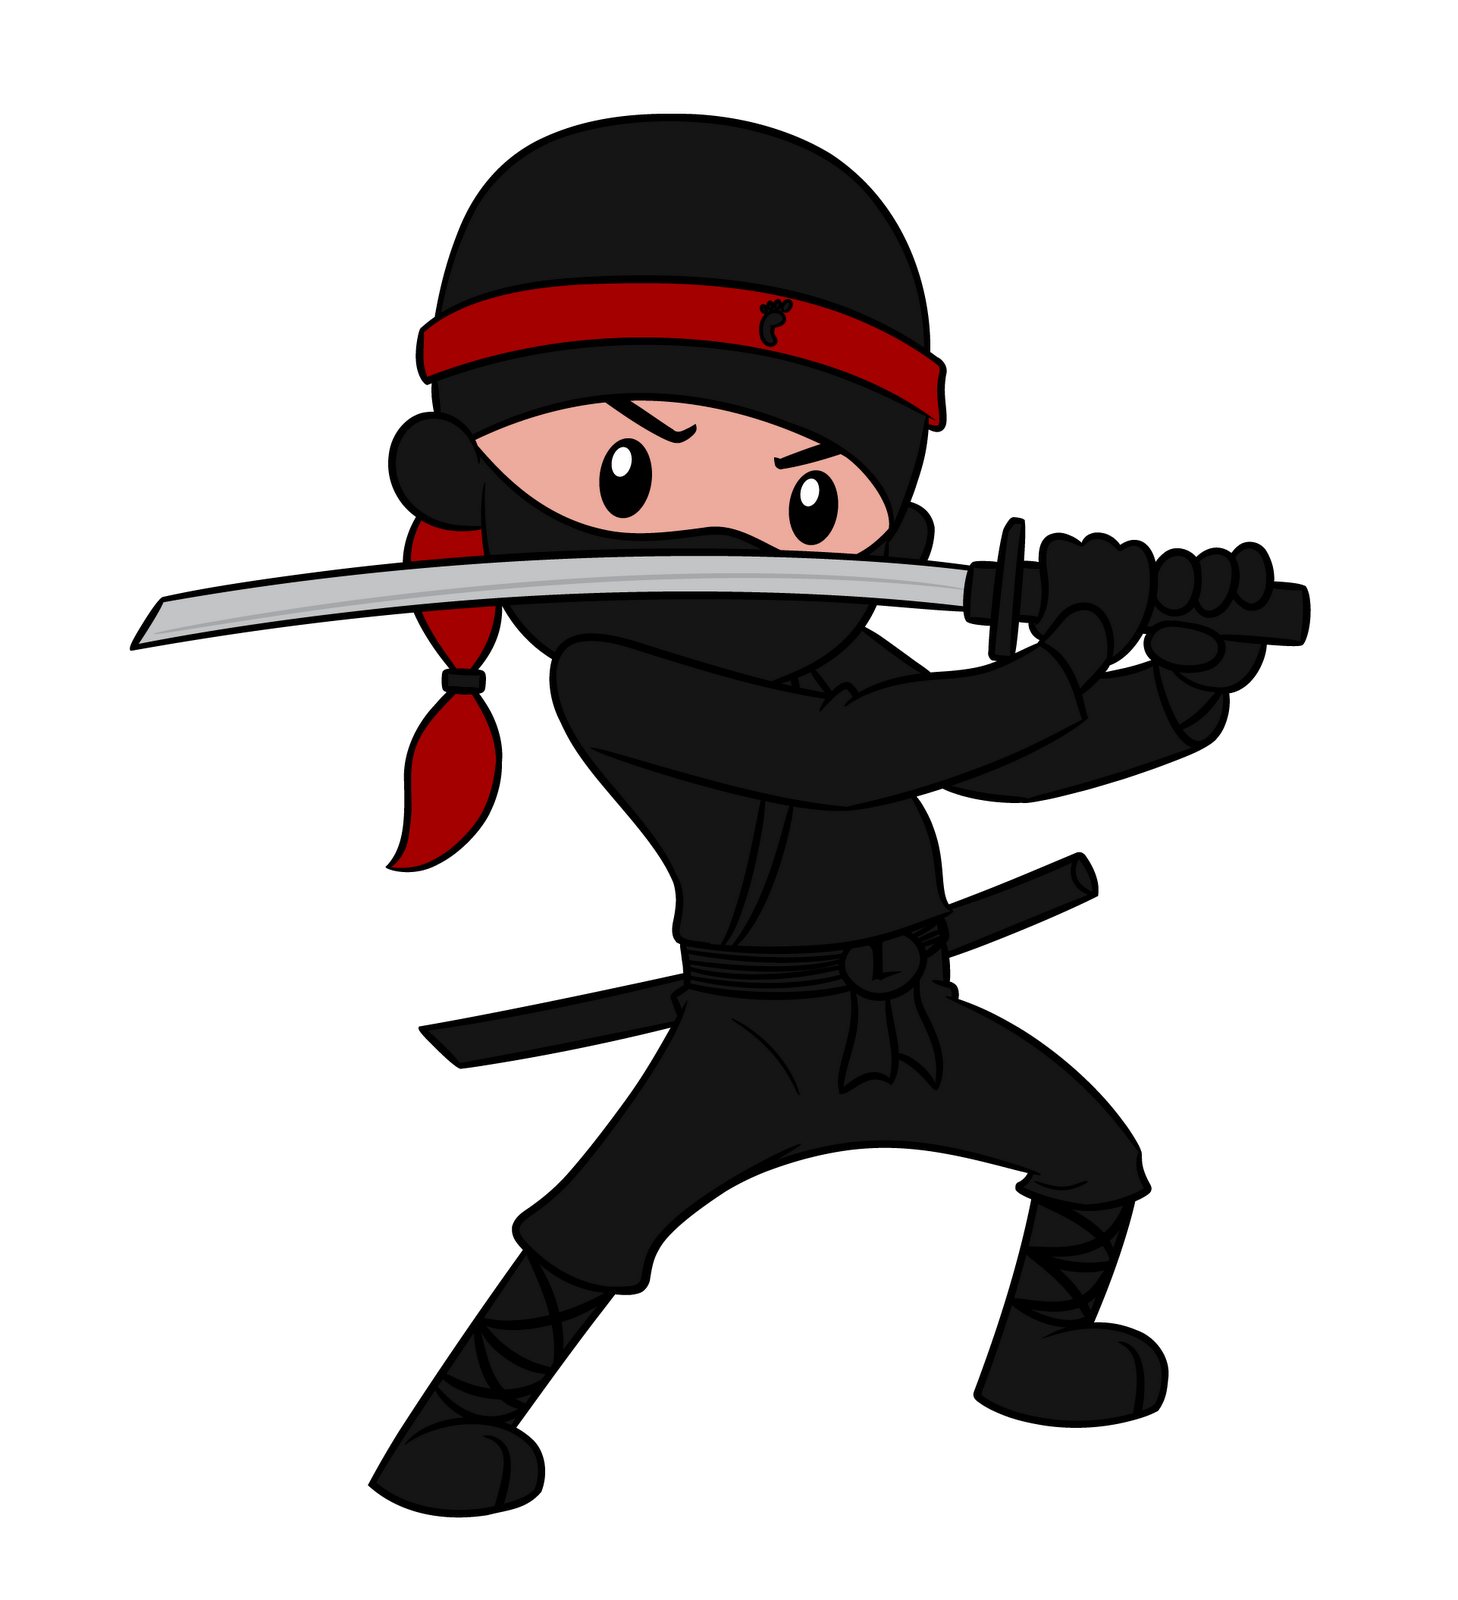 Secured Cards >> Evading Windows 7 Firewall rules with Basic Ninja Scanning using Nmap - Nipun Jaswal's Official Blog